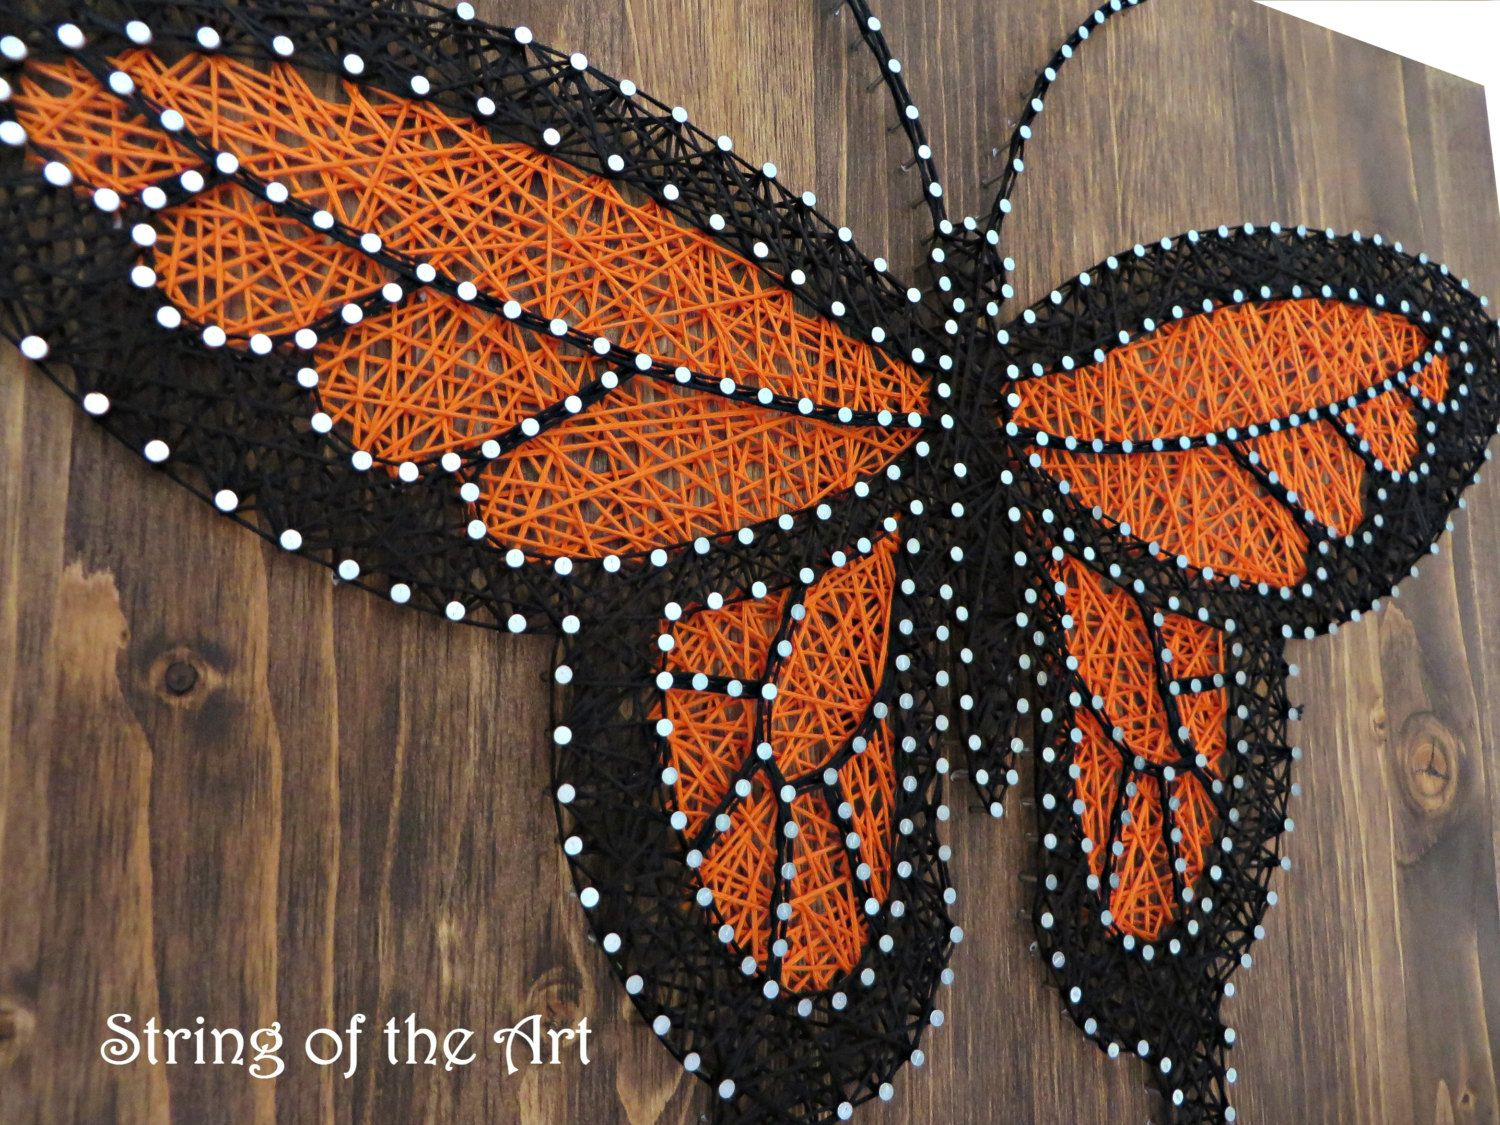 Butterfly String Art Kit Adult Crafts DIY